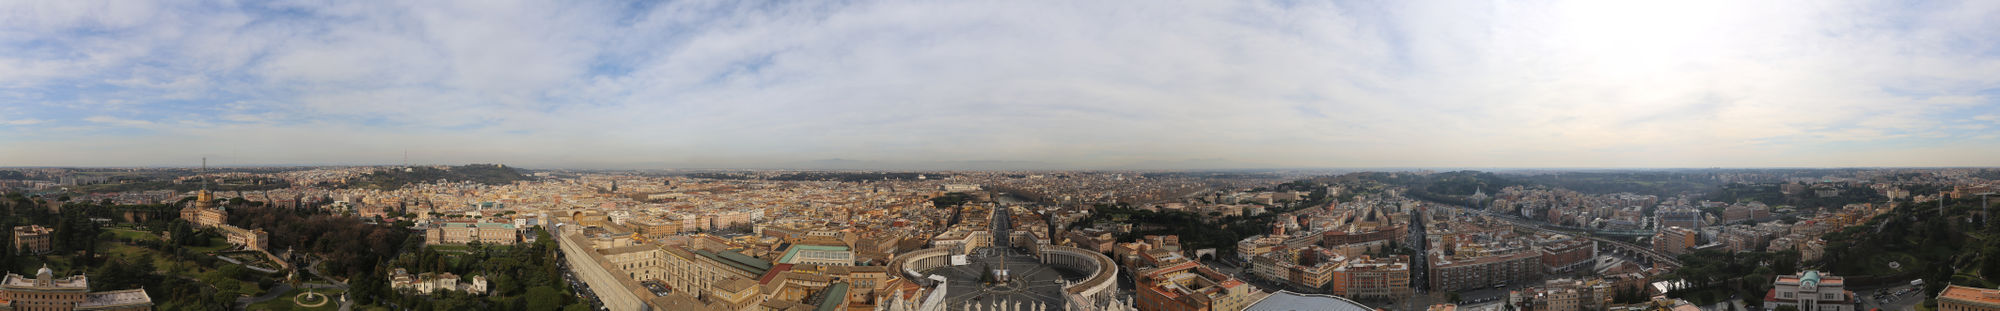 Panorama view from the dome of the St. Peter's Basilica.jpg